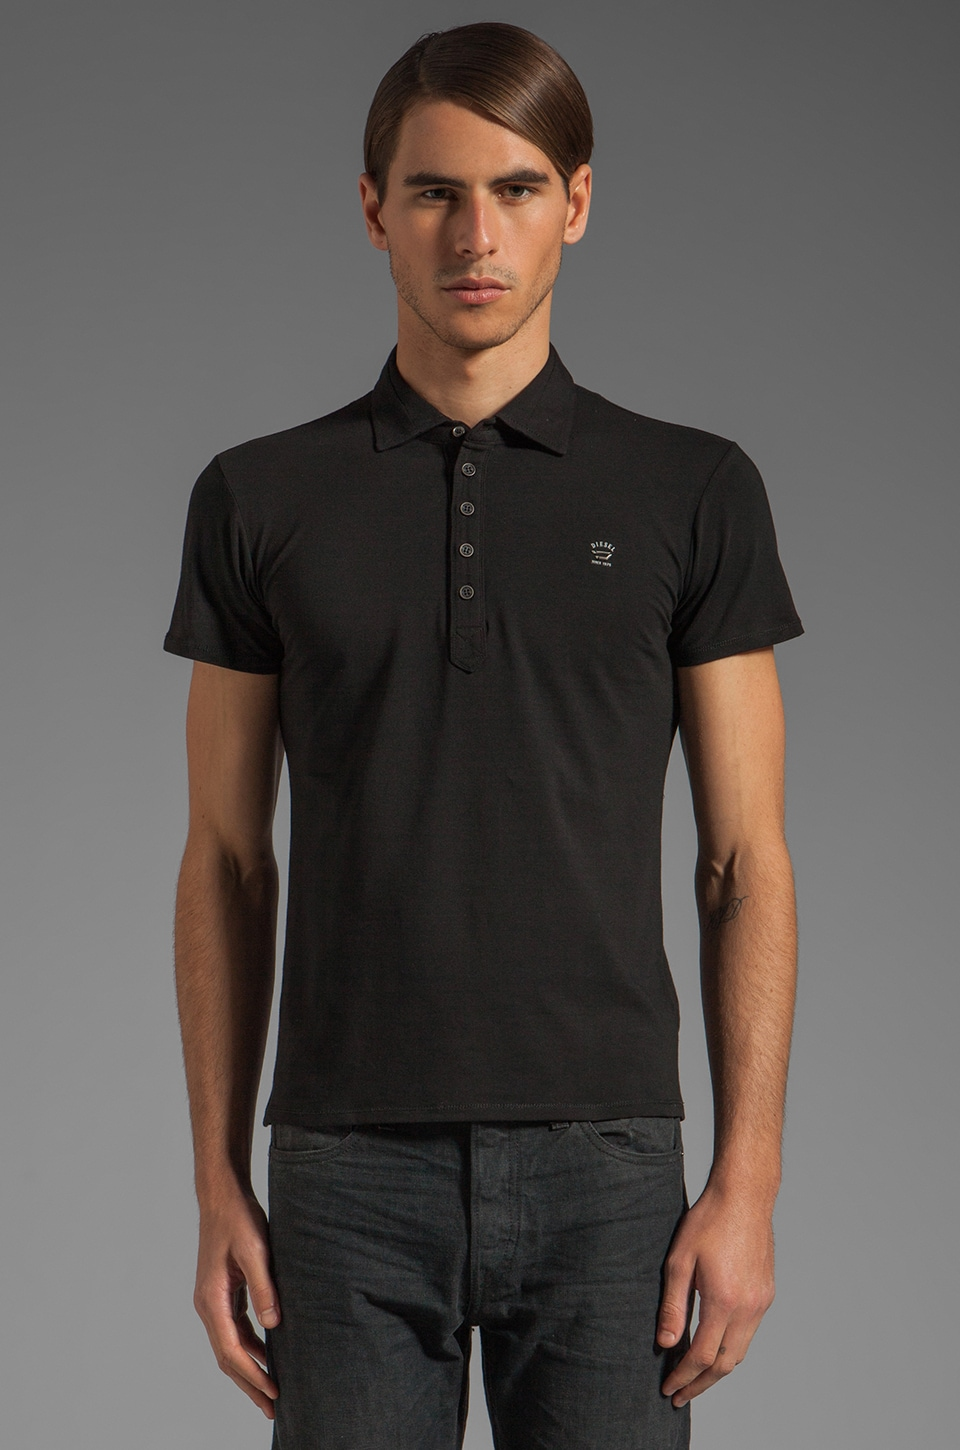 Diesel Alnilamy Polo in Black